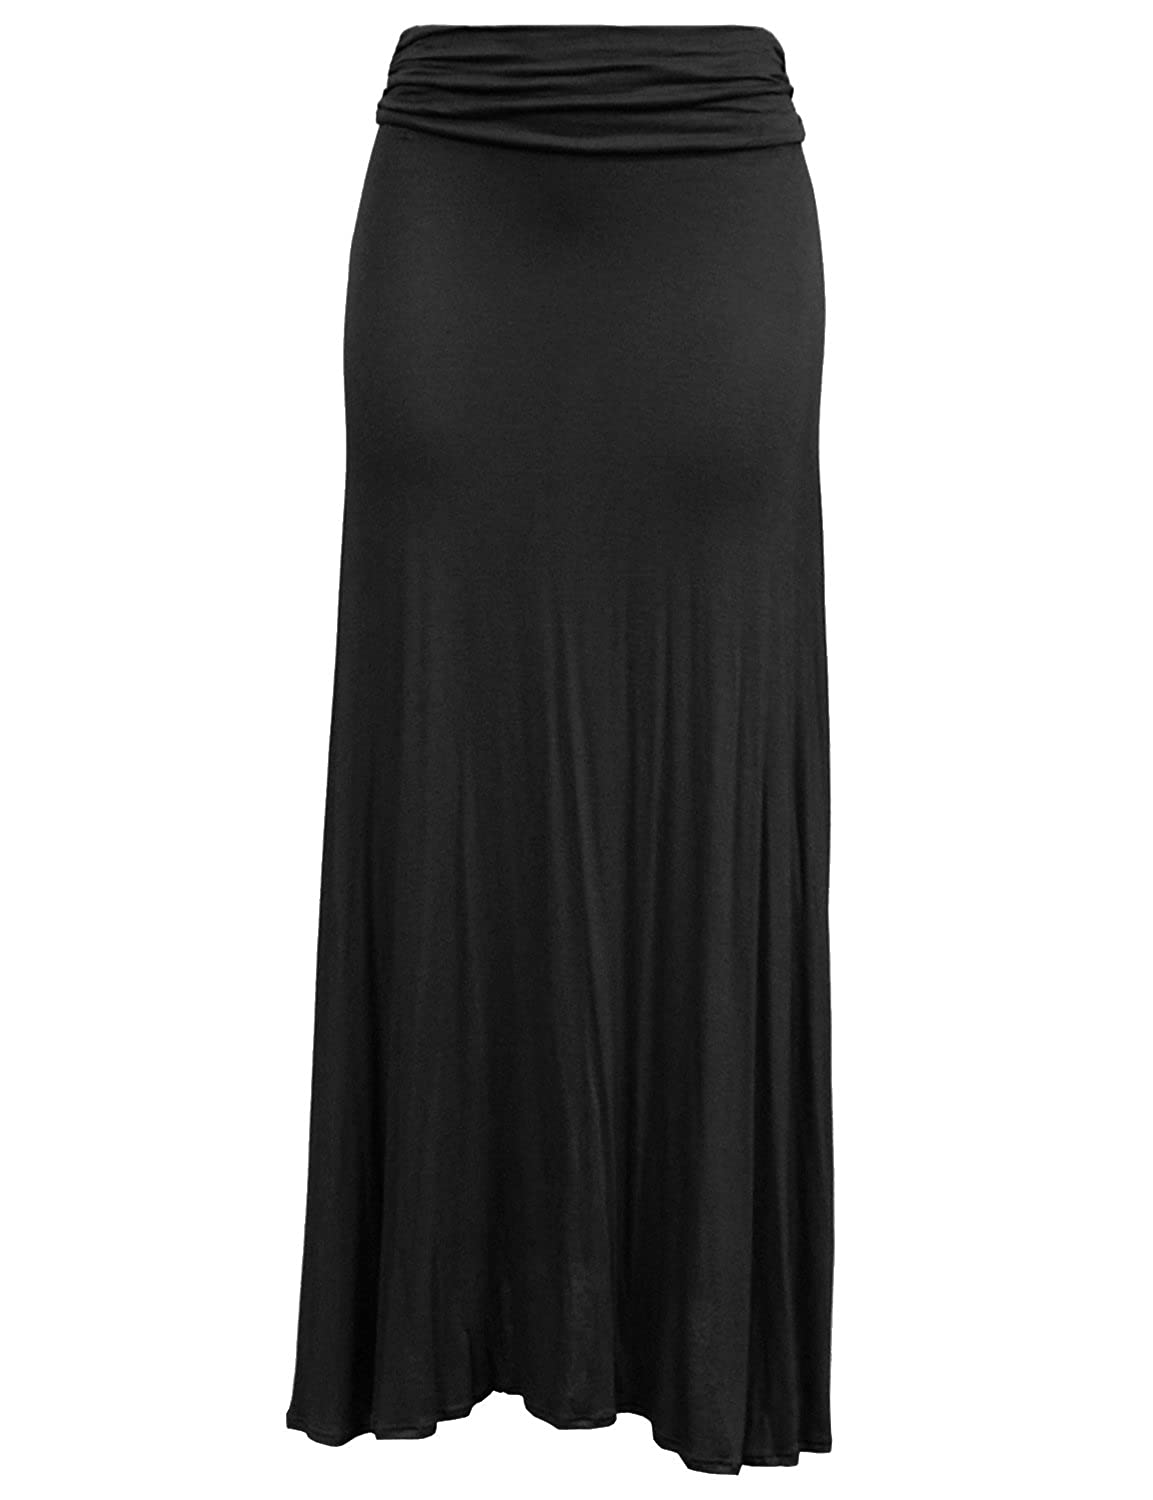 BEKDO Womens Plus Size Lightweight Floor Length Maxi Skirt with Stretch